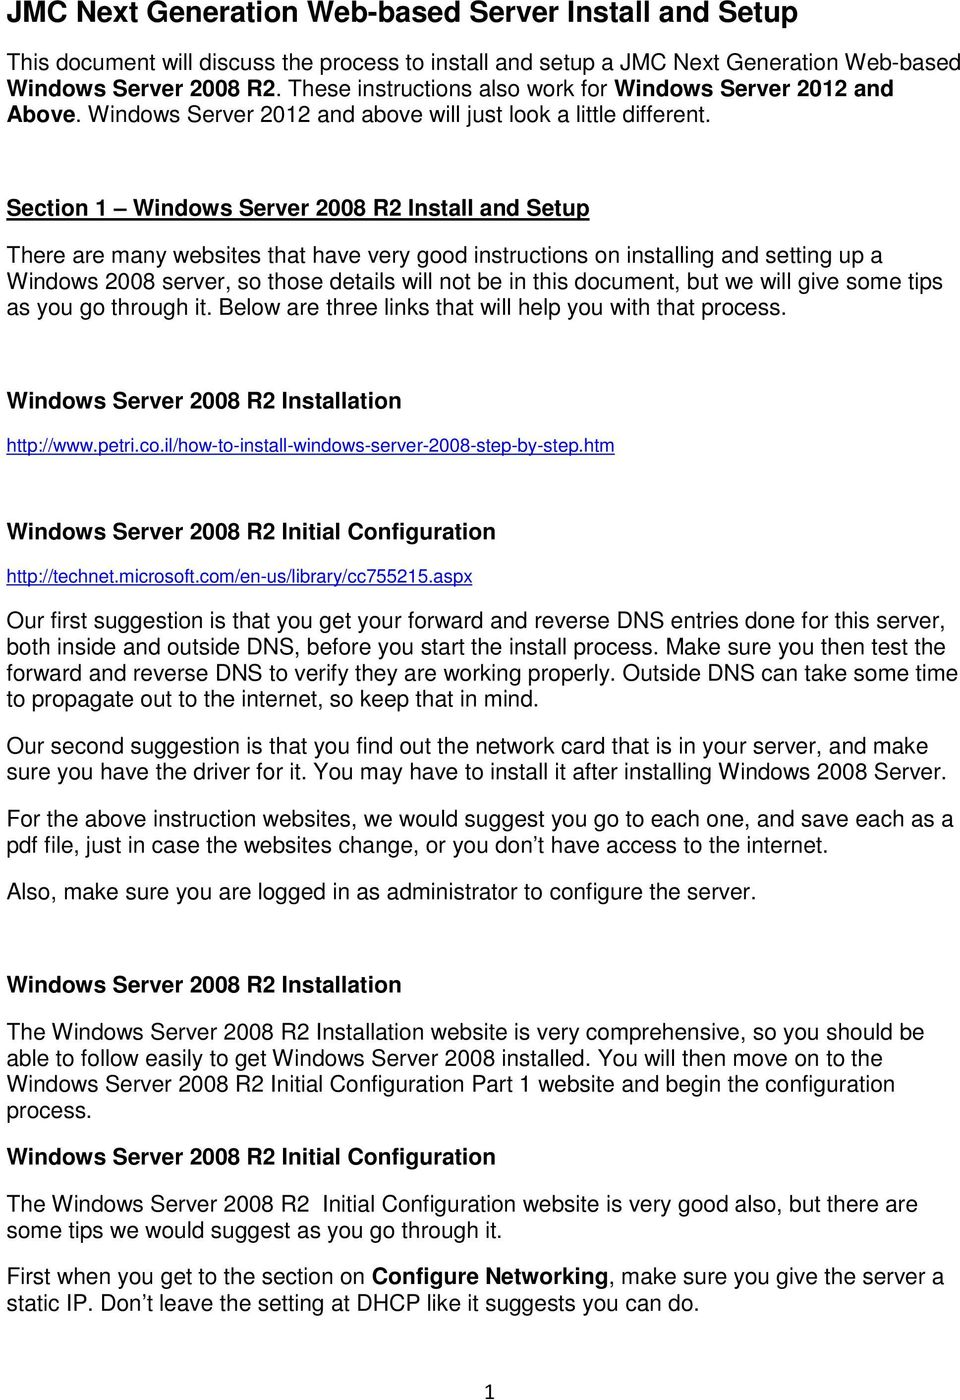 Section 1 Windows Server 2008 R2 Install and Setup There are many websites that have very good instructions on installing and setting up a Windows 2008 server, so those details will not be in this